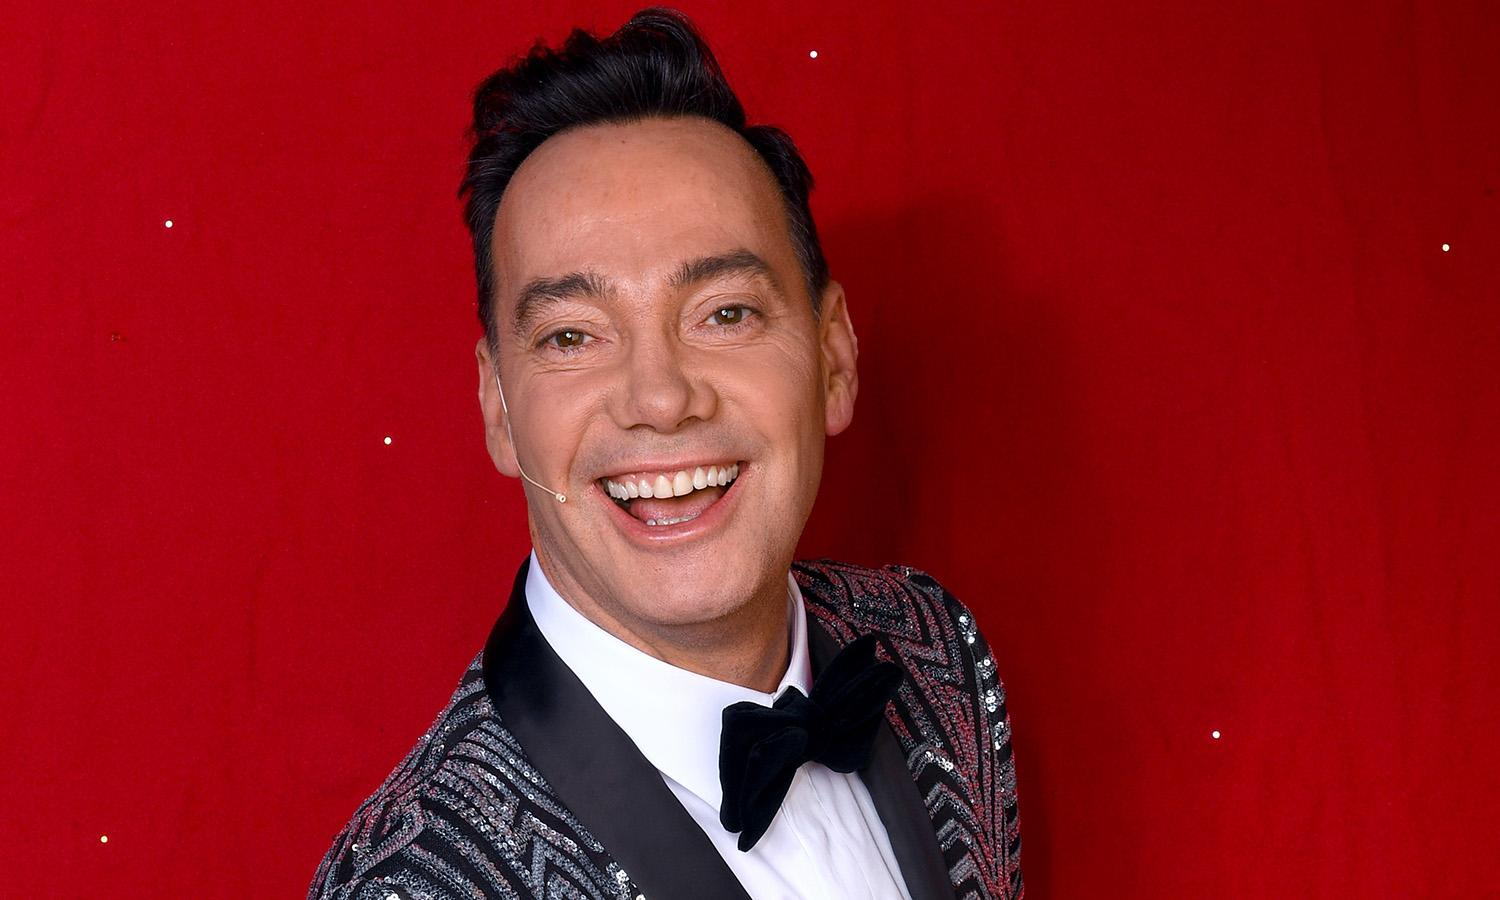 'Strictly' judge Craig Revel Horwood wanted children with ex-wife before their divorce